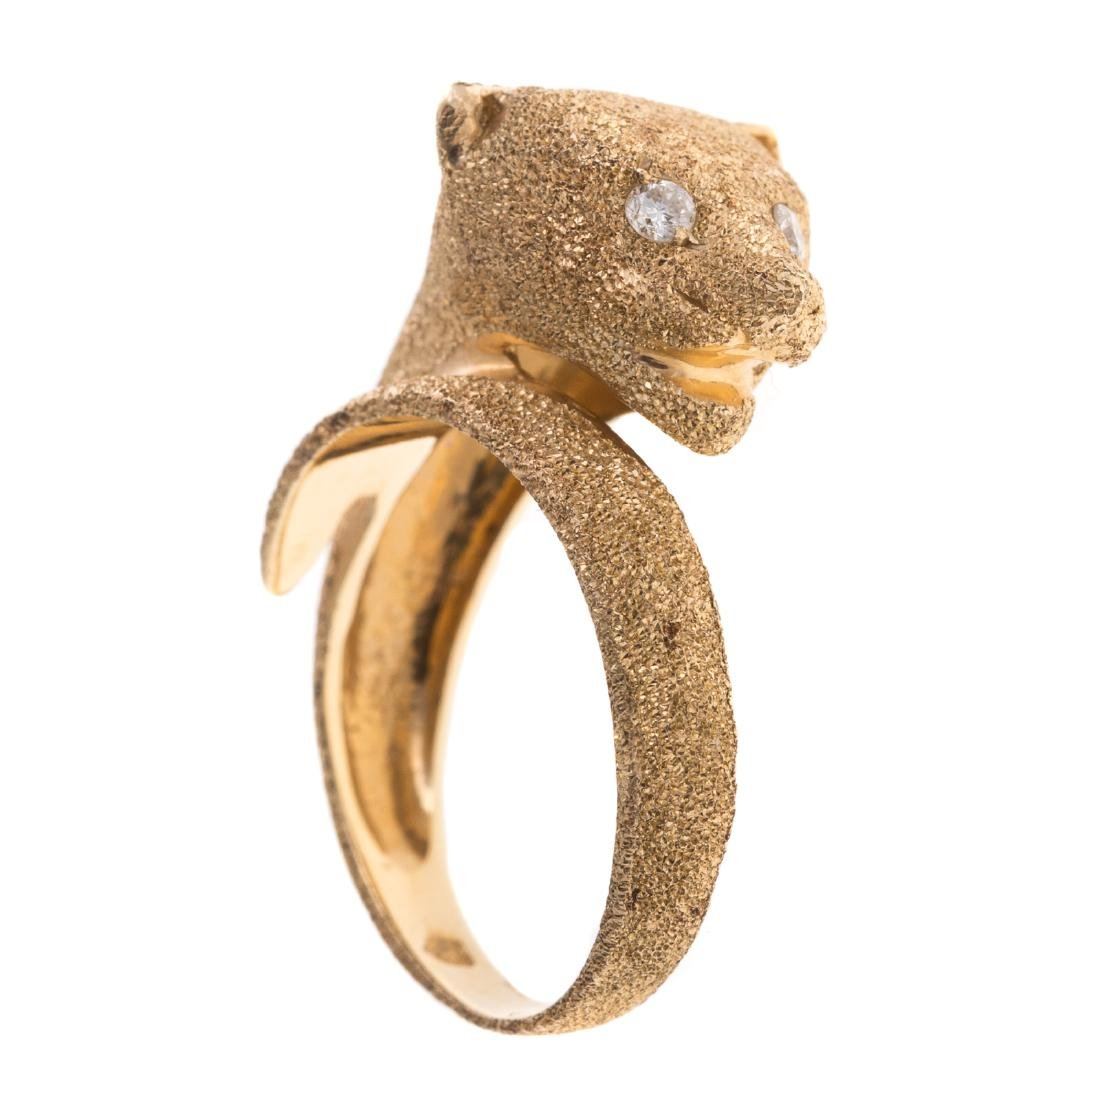 A Lady's 14K Panther Ring with Diamond Eyes